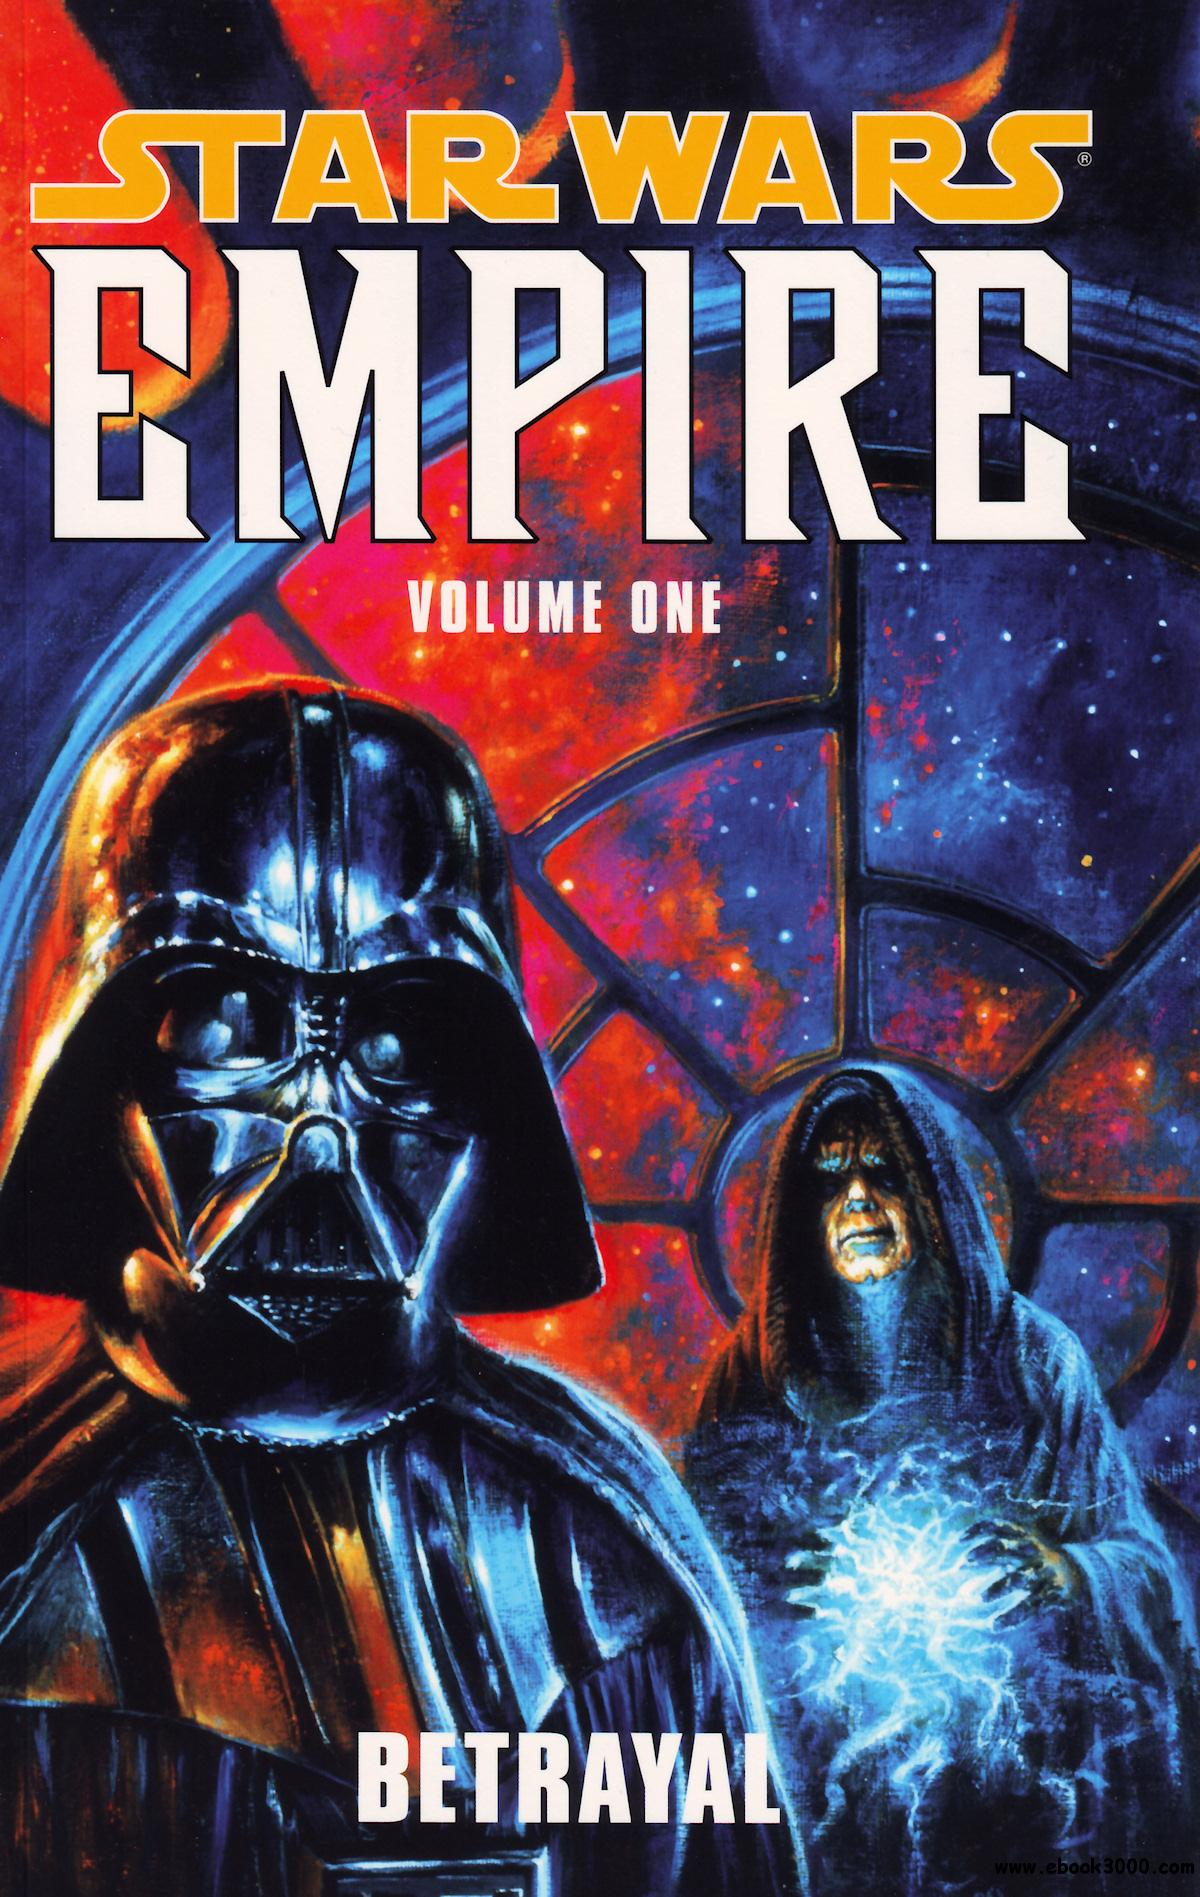 Star Wars - Empire Vol. 1 - Betrayal [TPB] (2003) free download